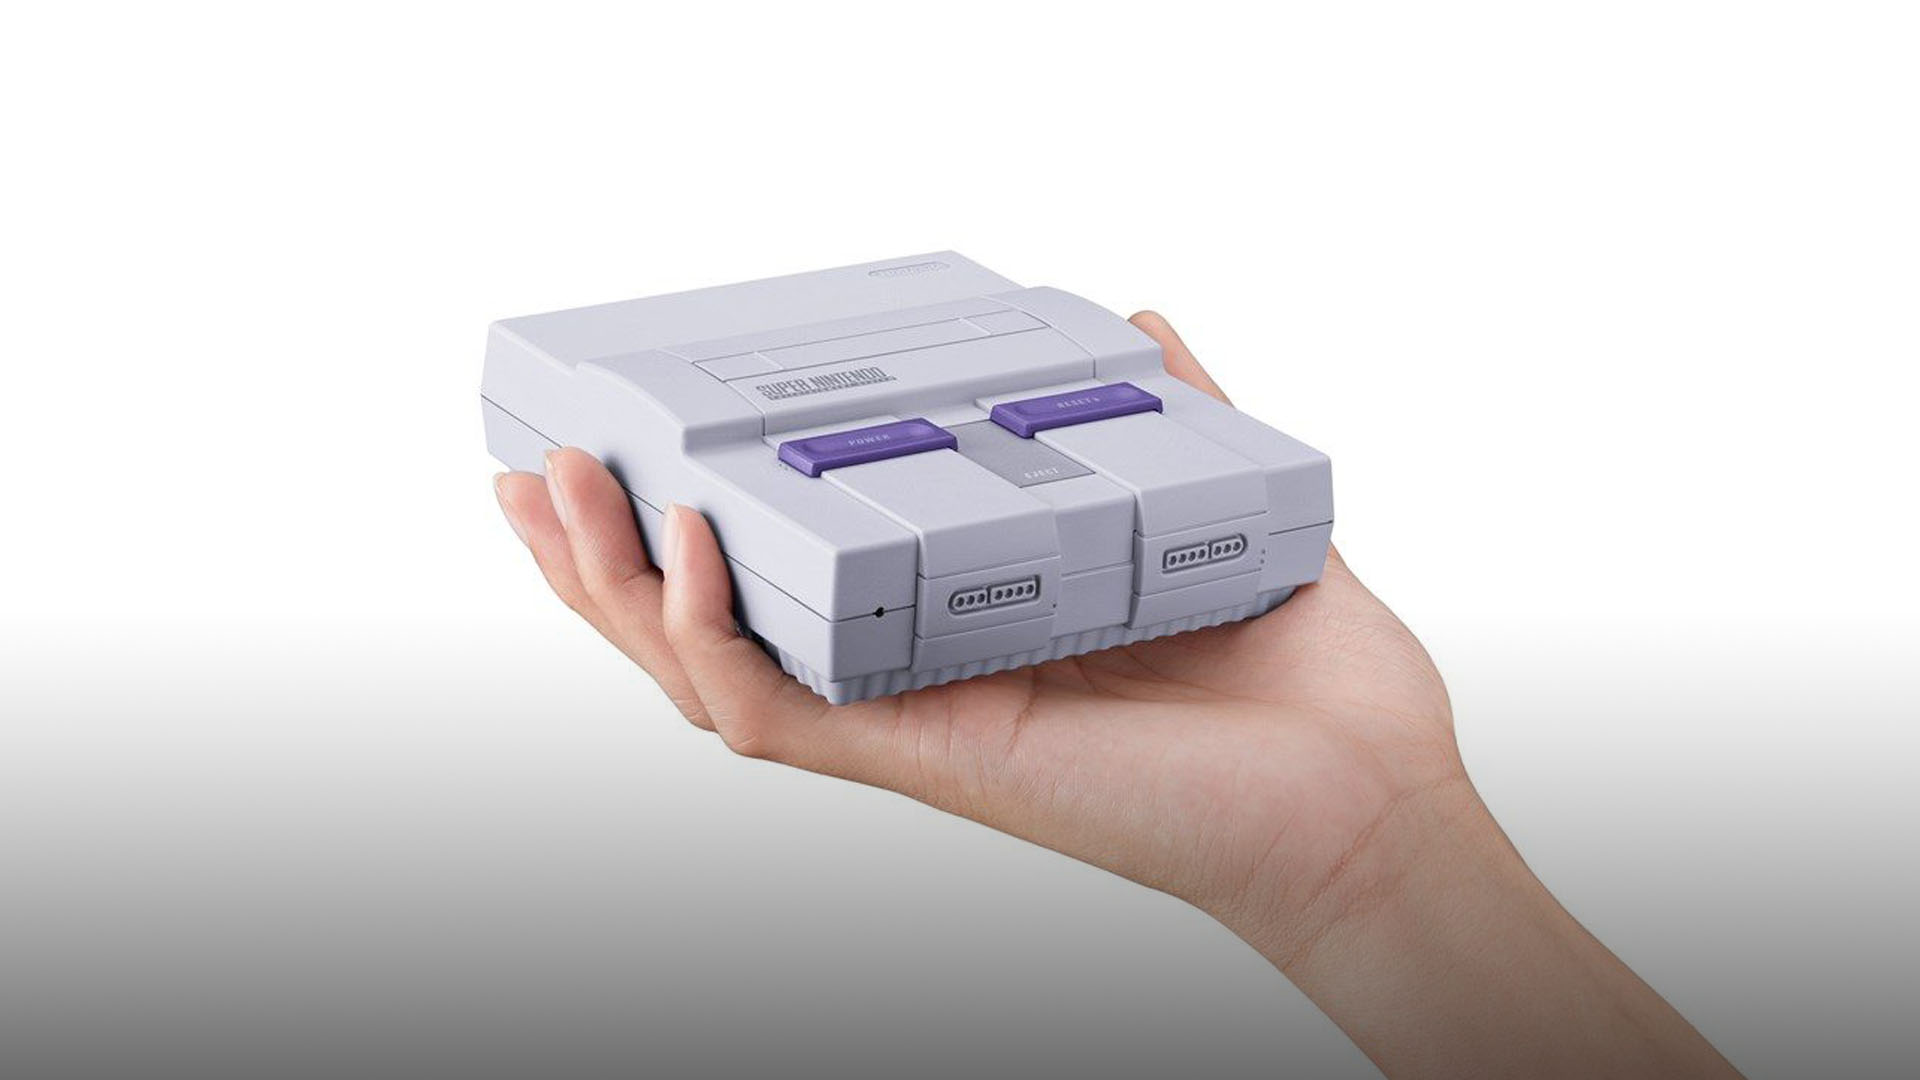 reggie-fils-aime-says-snes-classic-will-be-plentiful-enough-that-no-one-should-pay-a-scalper-for-one-social.jpg